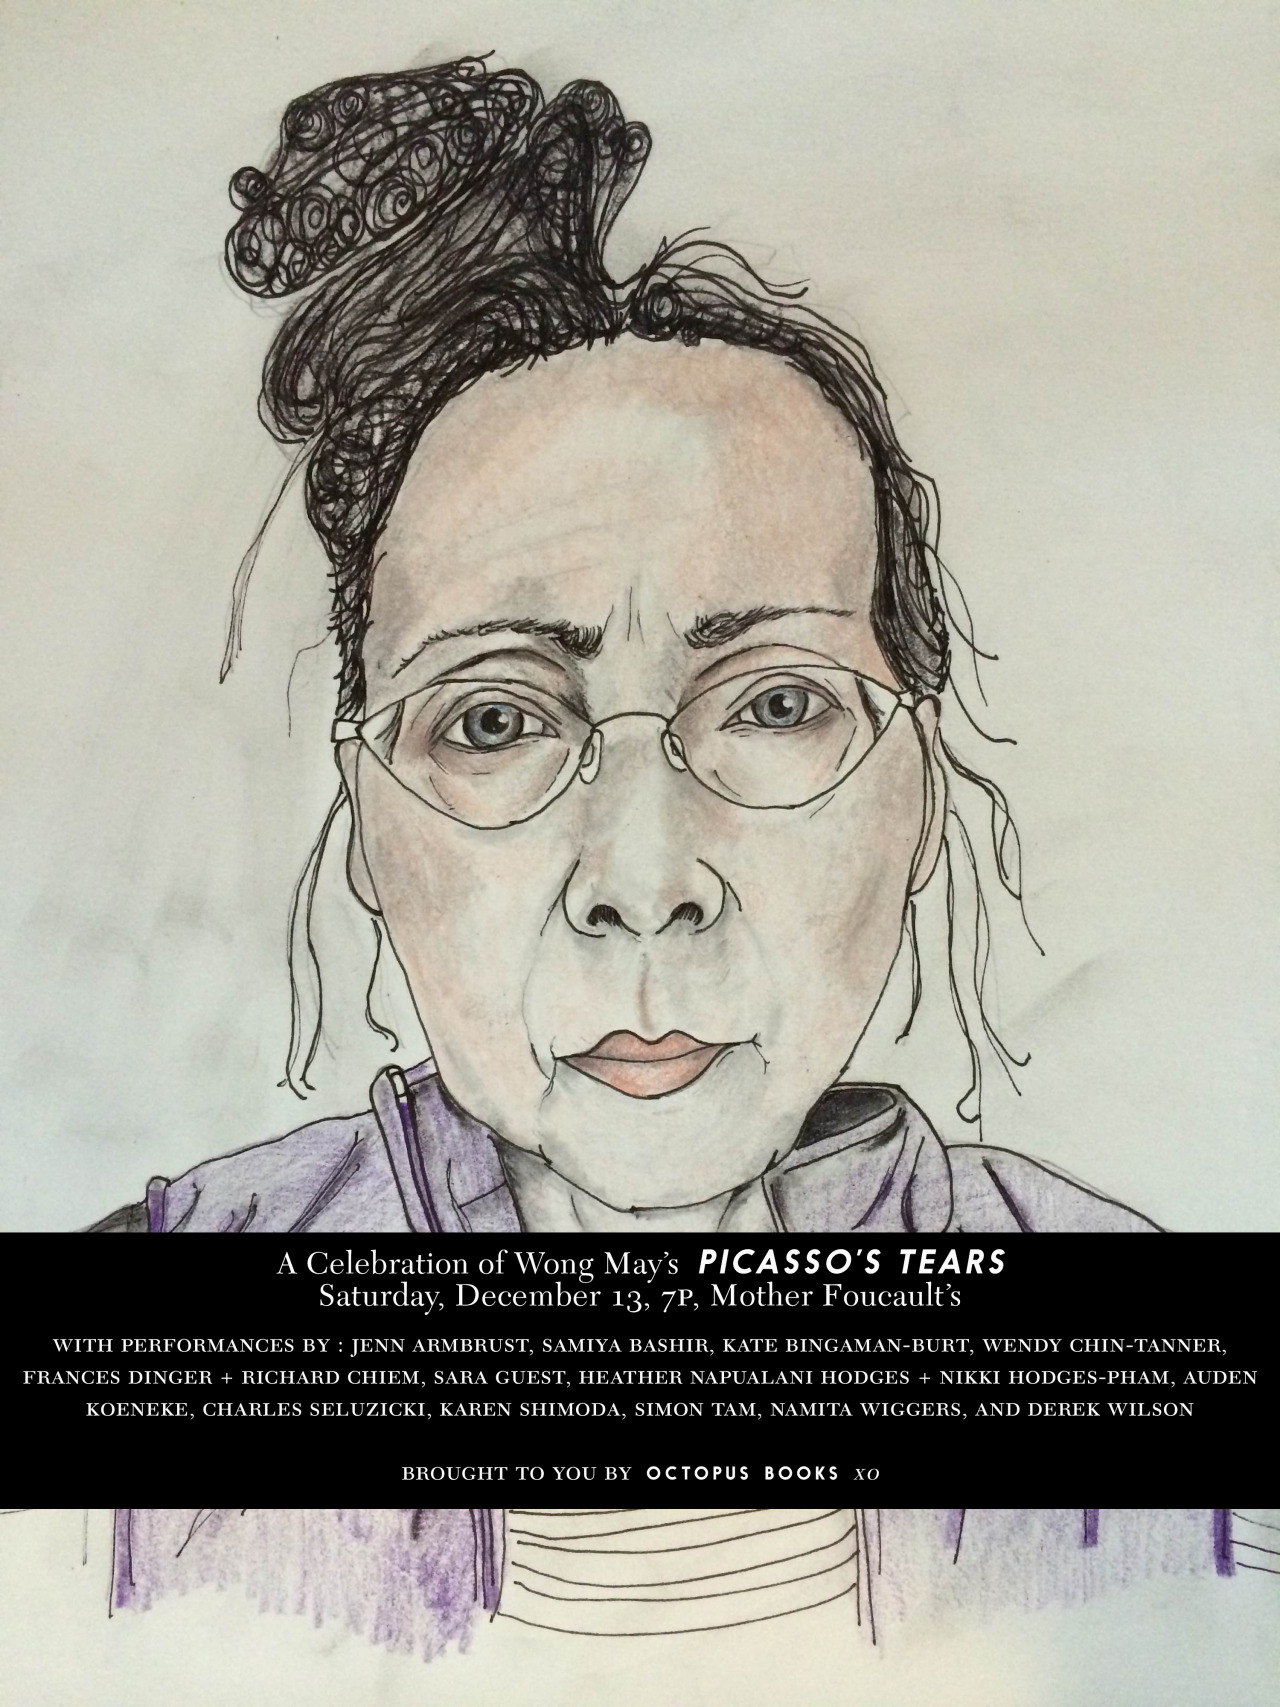 "This summer, Wong May's    Picasso's Tears: Poems 1978-2013    was published by Octopus Books, which marks one of the very proudest moments in our small presses' history.   Picasso's Tears is Wong May's fourth book of poems, but her first since leaving the United States in 1978.    We want to spread the news of the long-awaited return of Wong May to the poetry-reading world.         On Saturday, Dec. 13, at 7pm  at  Mother Foucault's Bookshop , we're celebrating Wong May with readings and performances by 15 of some of her most thoughtful readers.      Performing Wong May's work will be:     Jennifer Armbrust   Samiya Bashir   Kate Bingaman-Burt   Wendy Chin-Tanner   Frances Dinger and   Richard Chiem   Sara Brant Guest   Heather Napualani Hodges   and Nikki Hodges-Pham   Auden Koeneke   Charles Seluzicki  Karen McAlister Shimoda   Simon Tam  Namita Wiggers  Derek Hunter Wilson   This celebration serves as a fund-raiser for Octopus Books, so please bring some cash, and consider one of the following options at the door:   $10 donation $15 letter-pressed broadside of Wong May's ""Teaching Simone Weil to Eat a Pineapple"" designed by Drew Swenhaugen in a limited edition of 50.  $20 A limited hard cover edition of Picasso's Tears $25 Book + Broadside  Mingling starts at 7pm, and the performances will start promptly at 7:45. There will be some beer and wine available, but also please feel free to also bring your own.    An interview with Wong May in the May issue of The Believer.    Wong May at the Poetry Foundation."